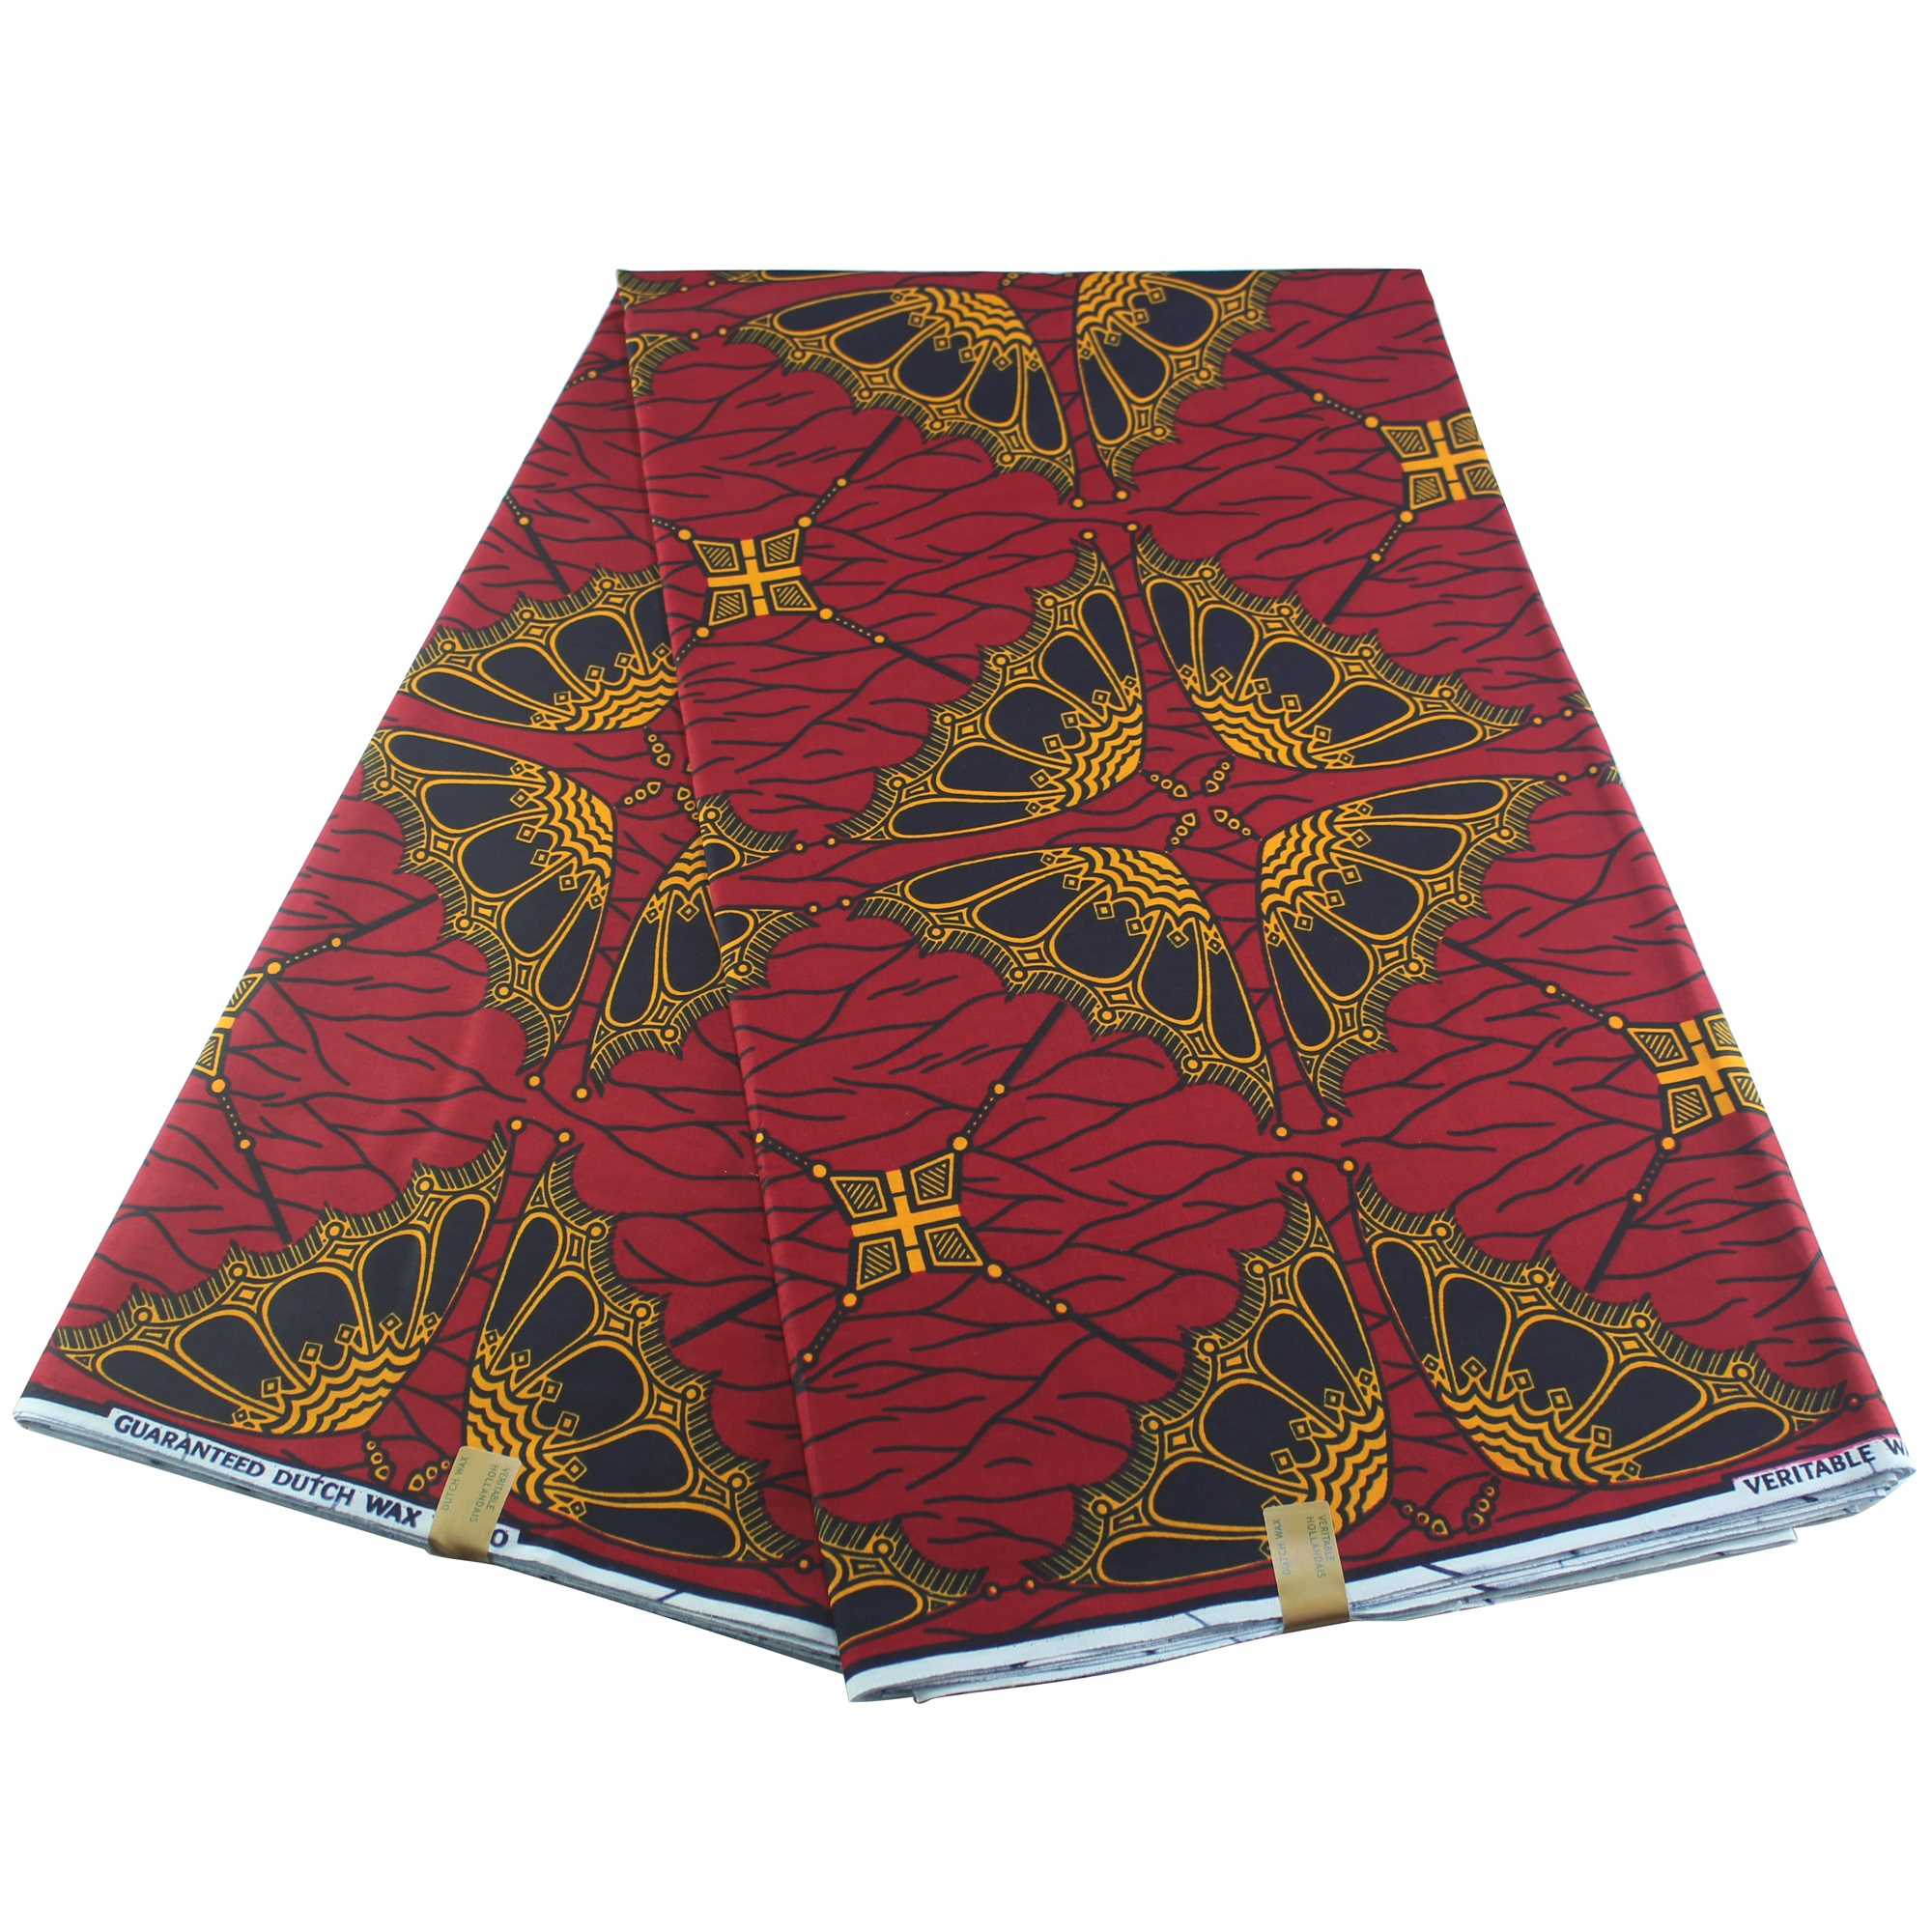 New African Wax 2019 Colorful Ankara Fabric Material 100% Cotton 6Yards For Clothing Sewing